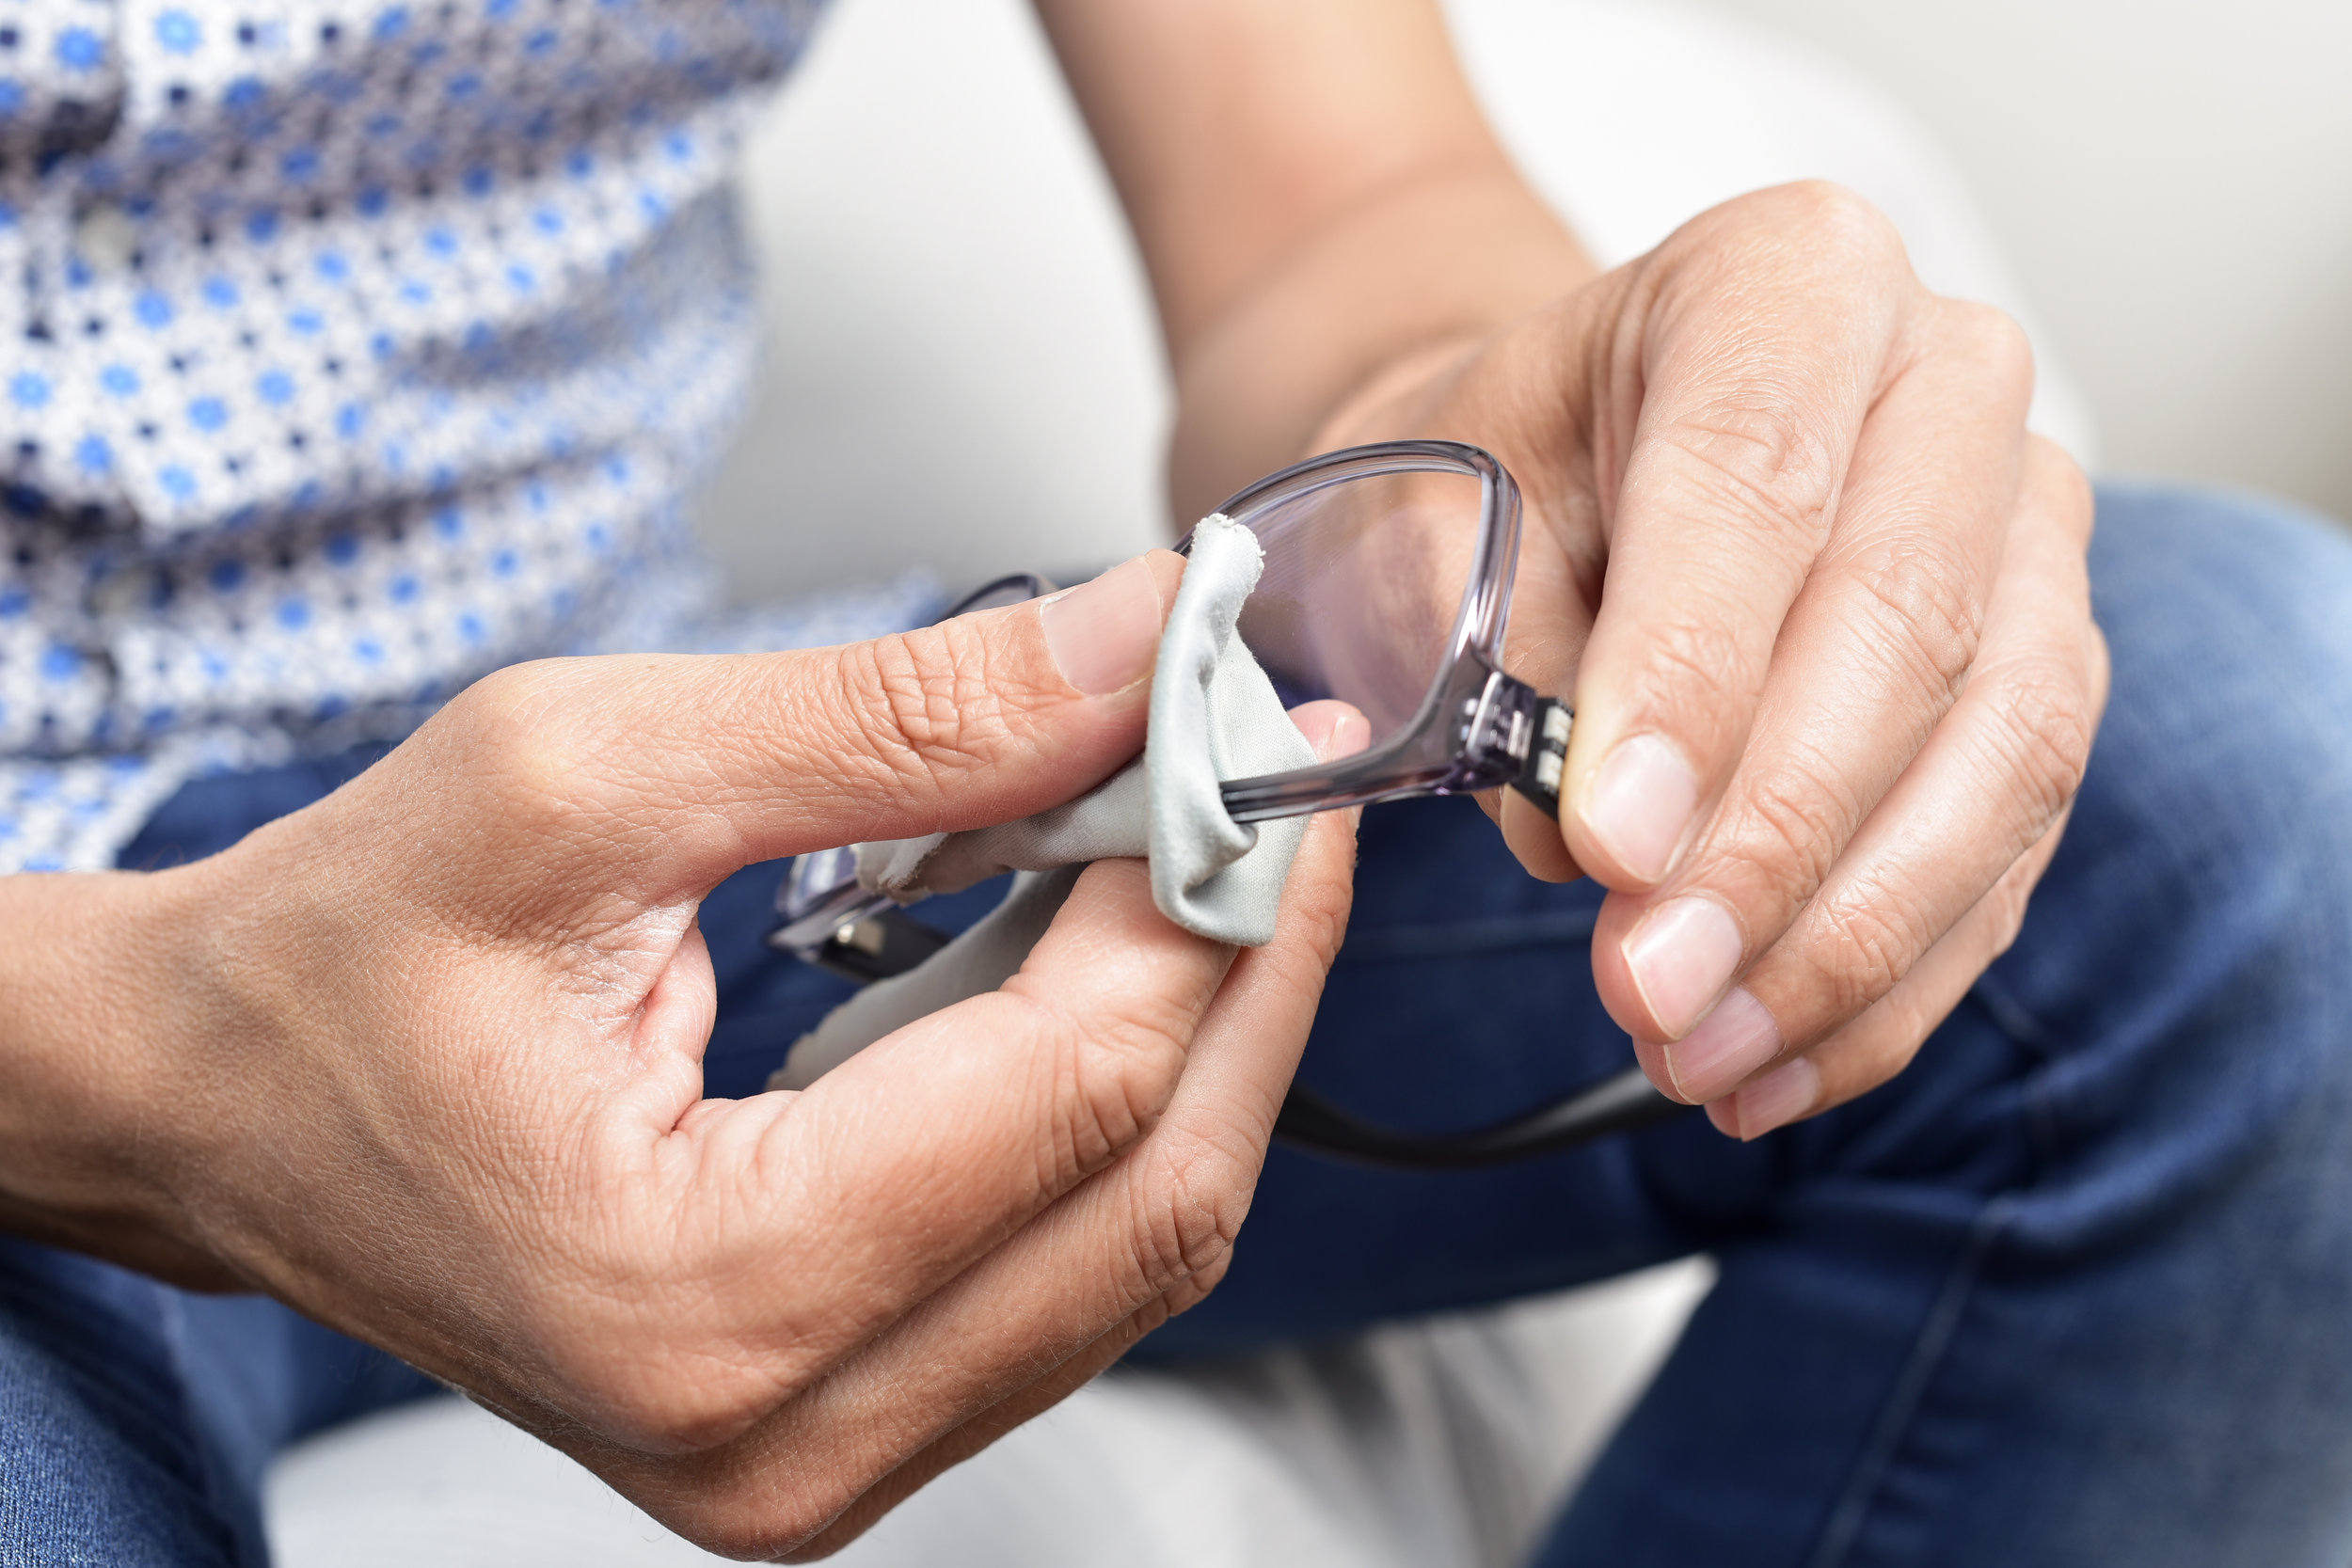 Man cleaning his eyeglasses with a cleaning cloth